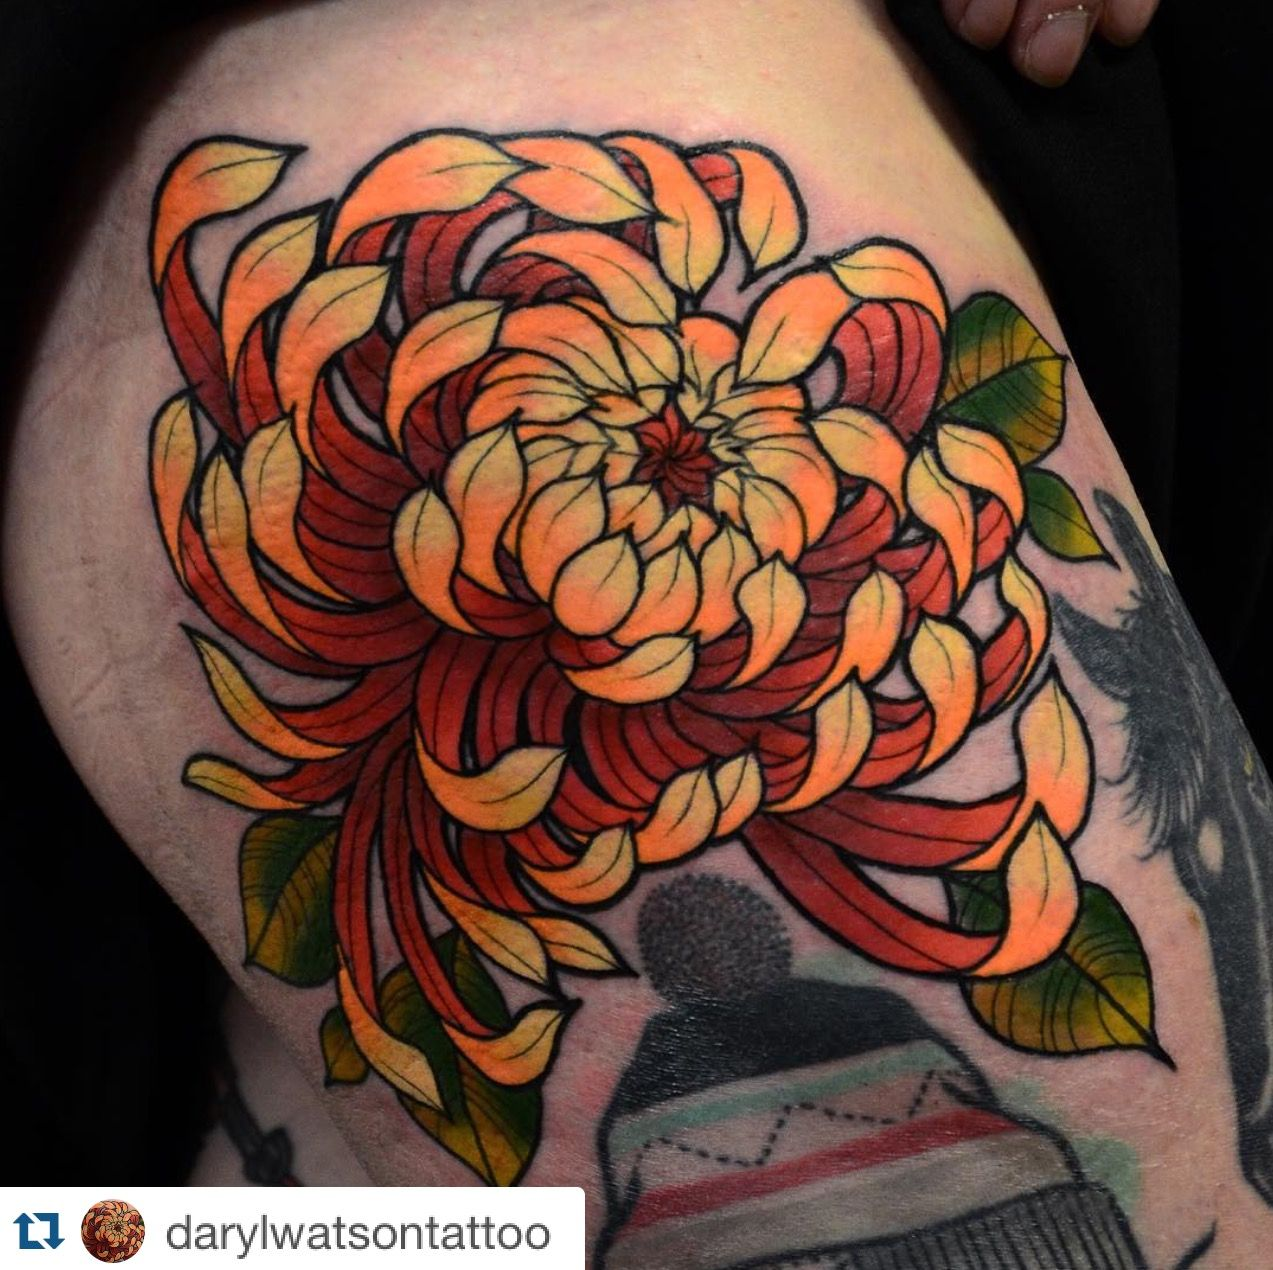 Darylwatsontattoo Is Back In The Studio October 13th 14th To